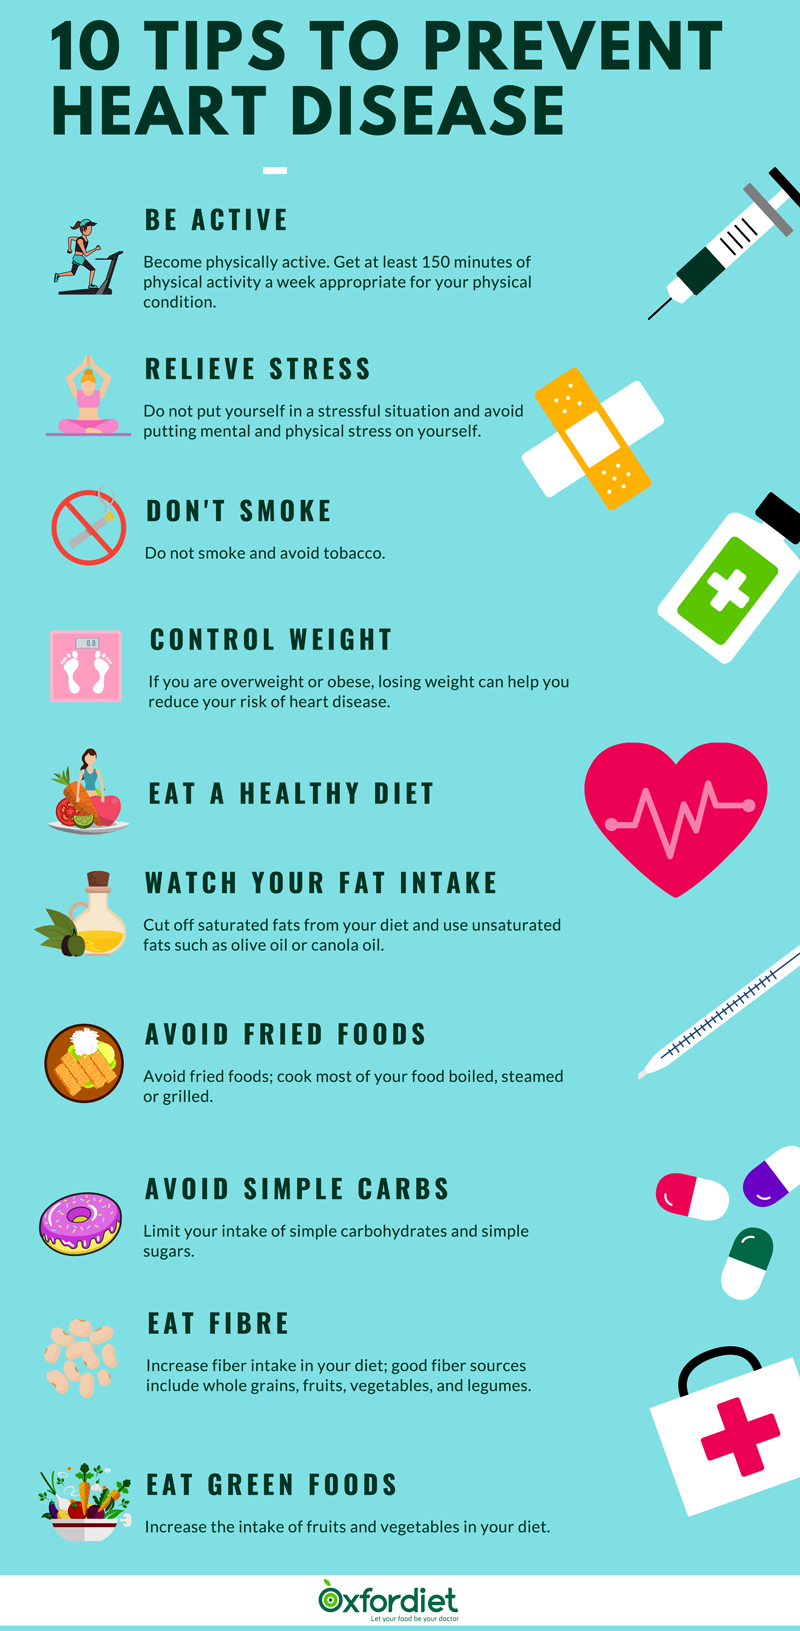 10 tips to prevent heart disease